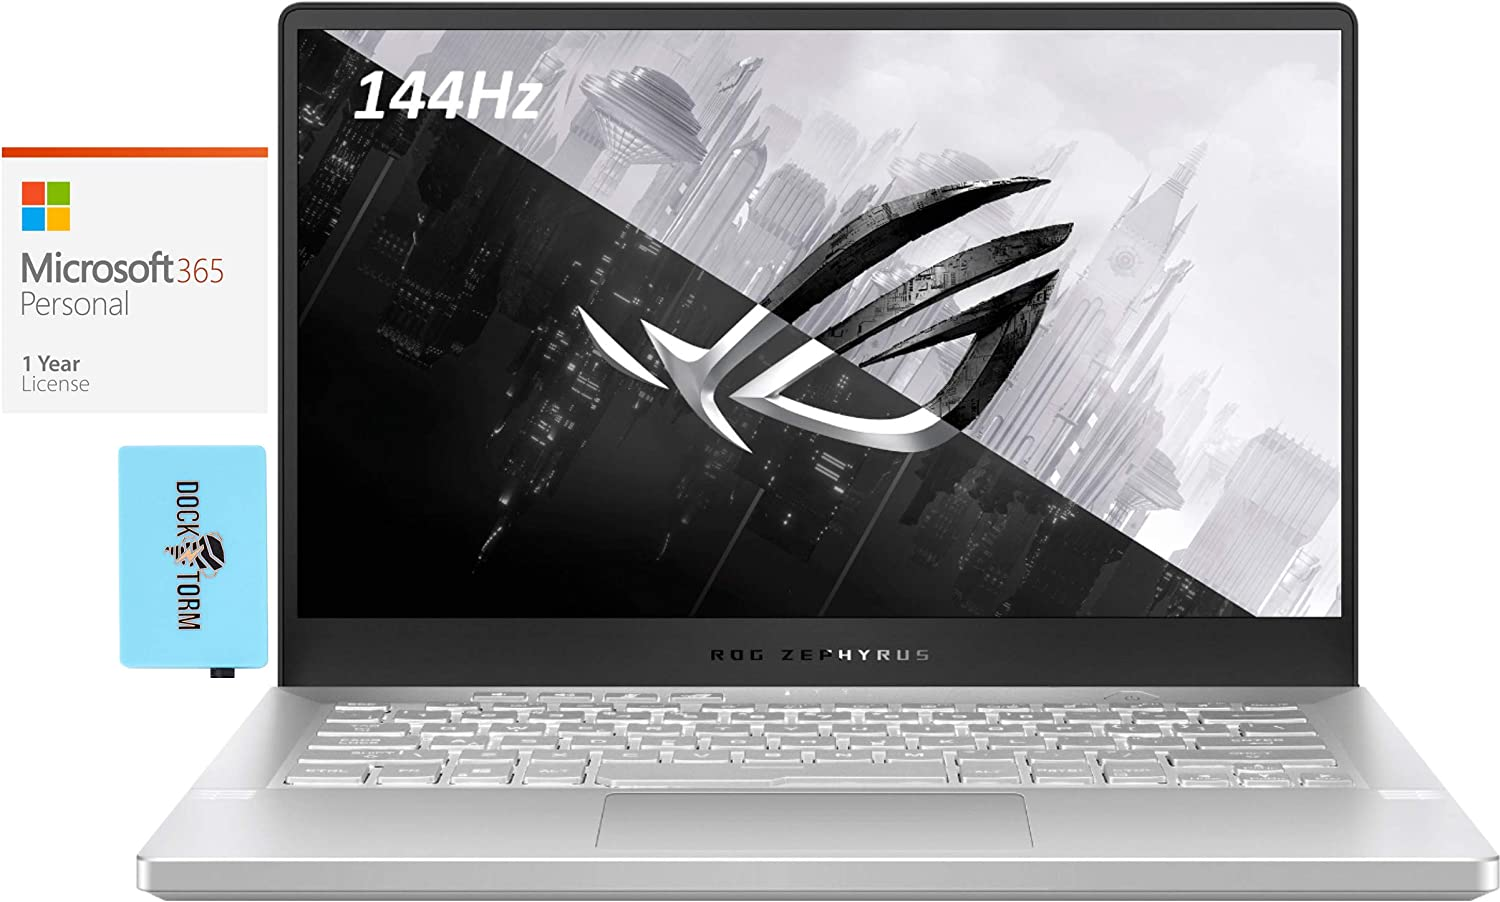 ASUS price Max 76% OFF ROG Zephyrus Gaming and Entertainment 9 AMD Ryzen Laptop 5